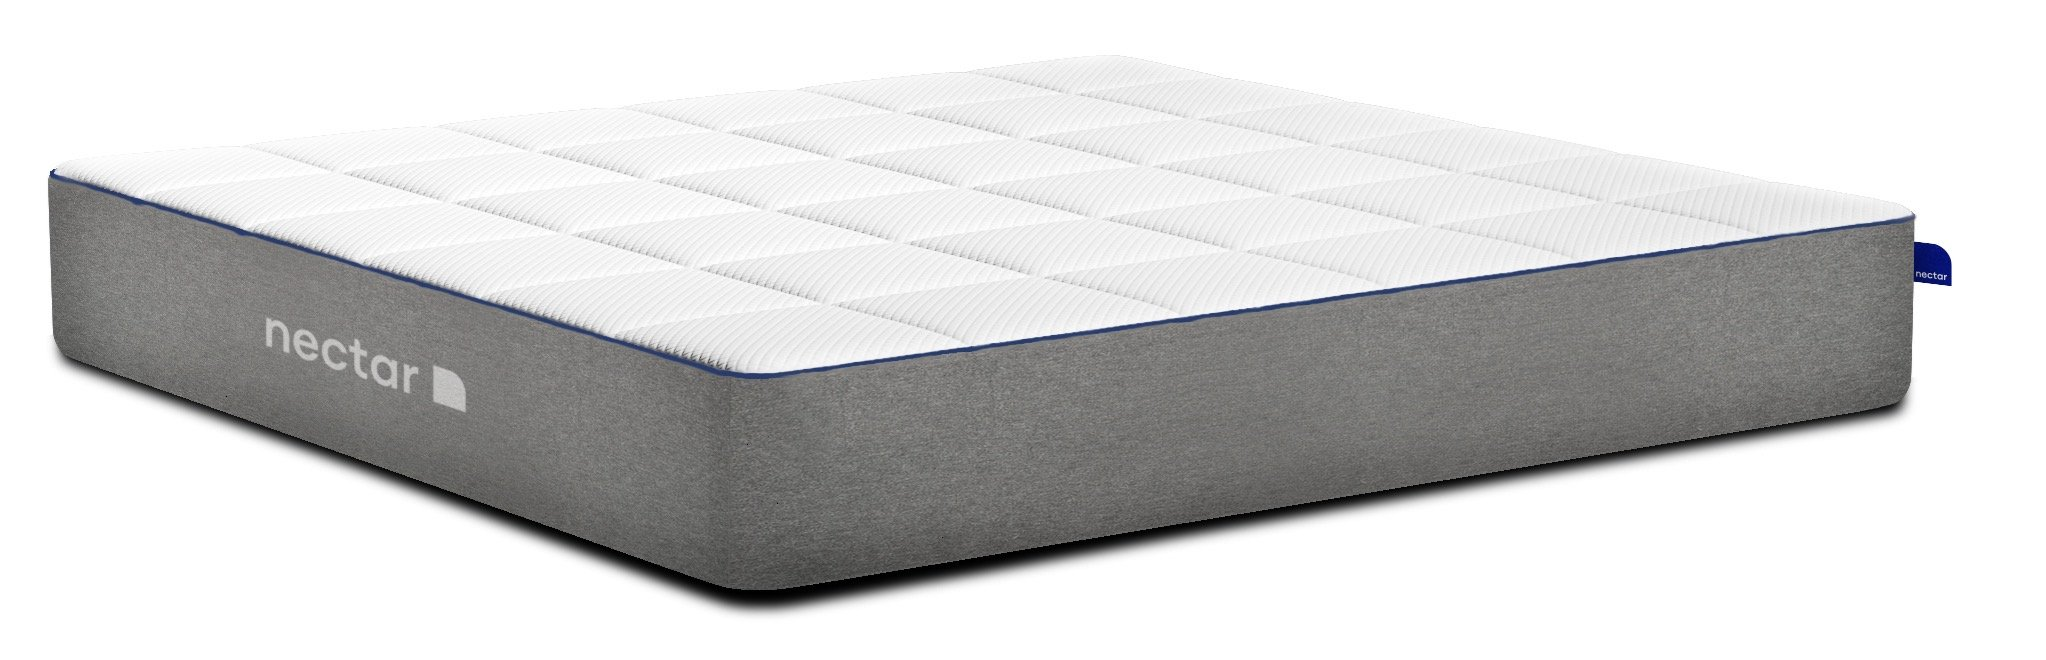 Nectar memory foam mattress with no frame